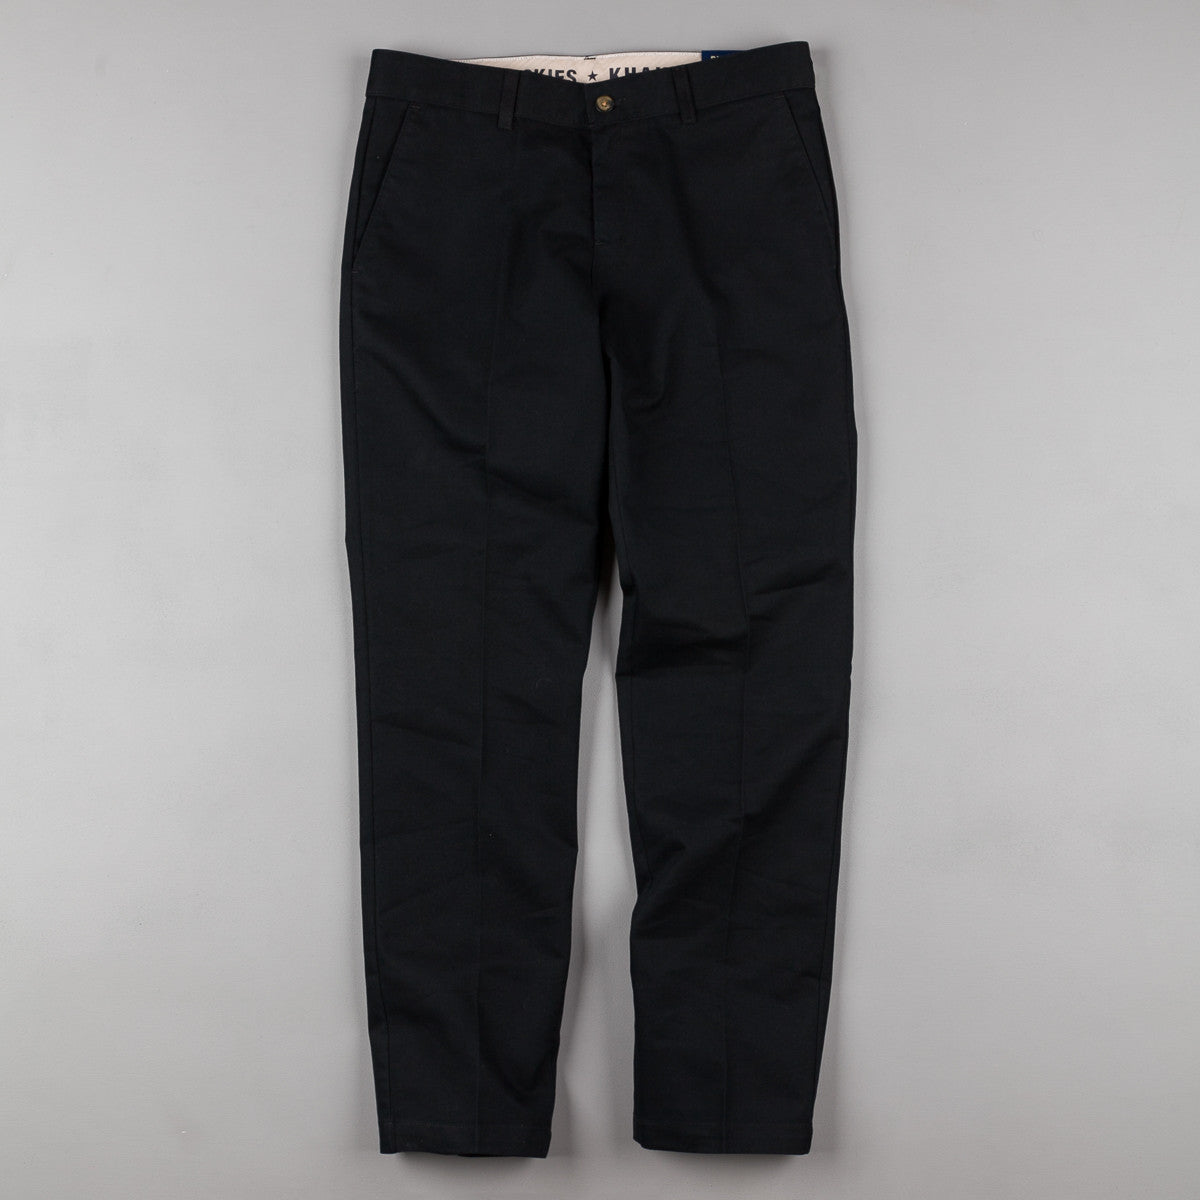 Dickies 900 Slim Khaki Trousers - Black